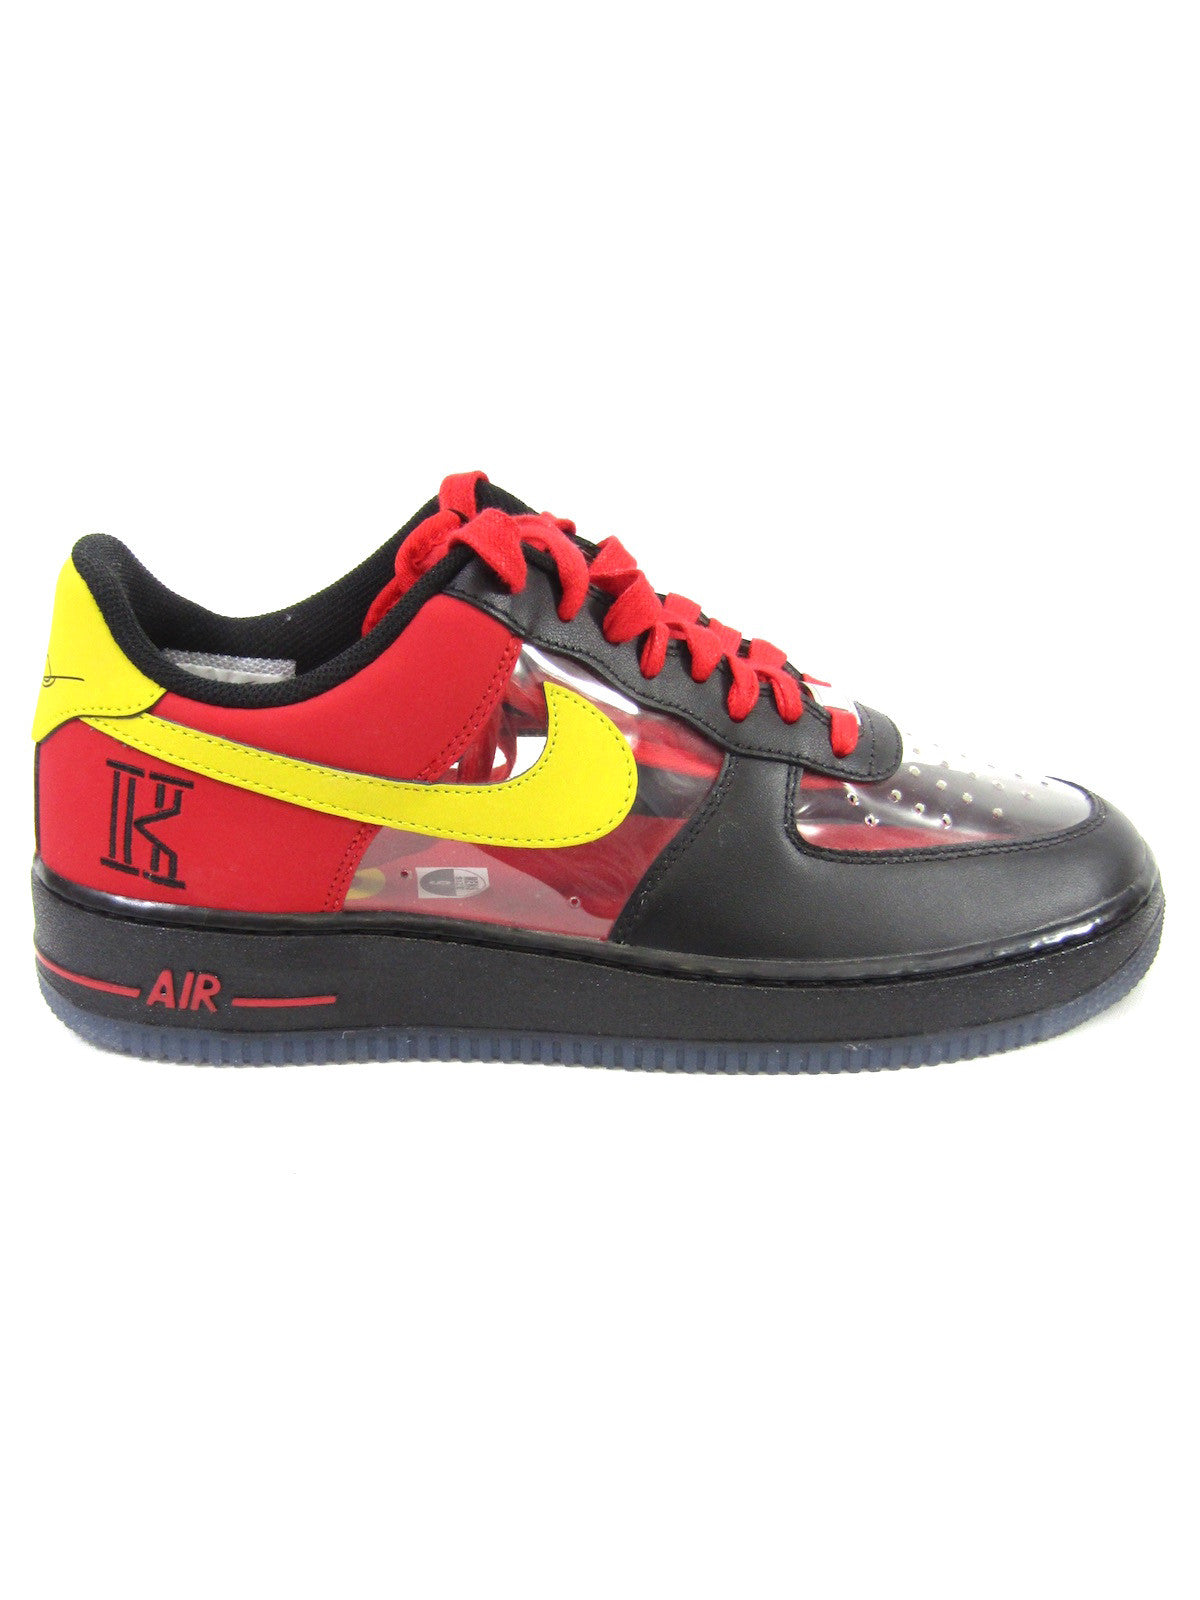 d7c458f52264 NIKE Men Multi Color Air Force 1 Low Top Kyrie Irving PE Sneakers Size 9.  Nike Lorena s Worth